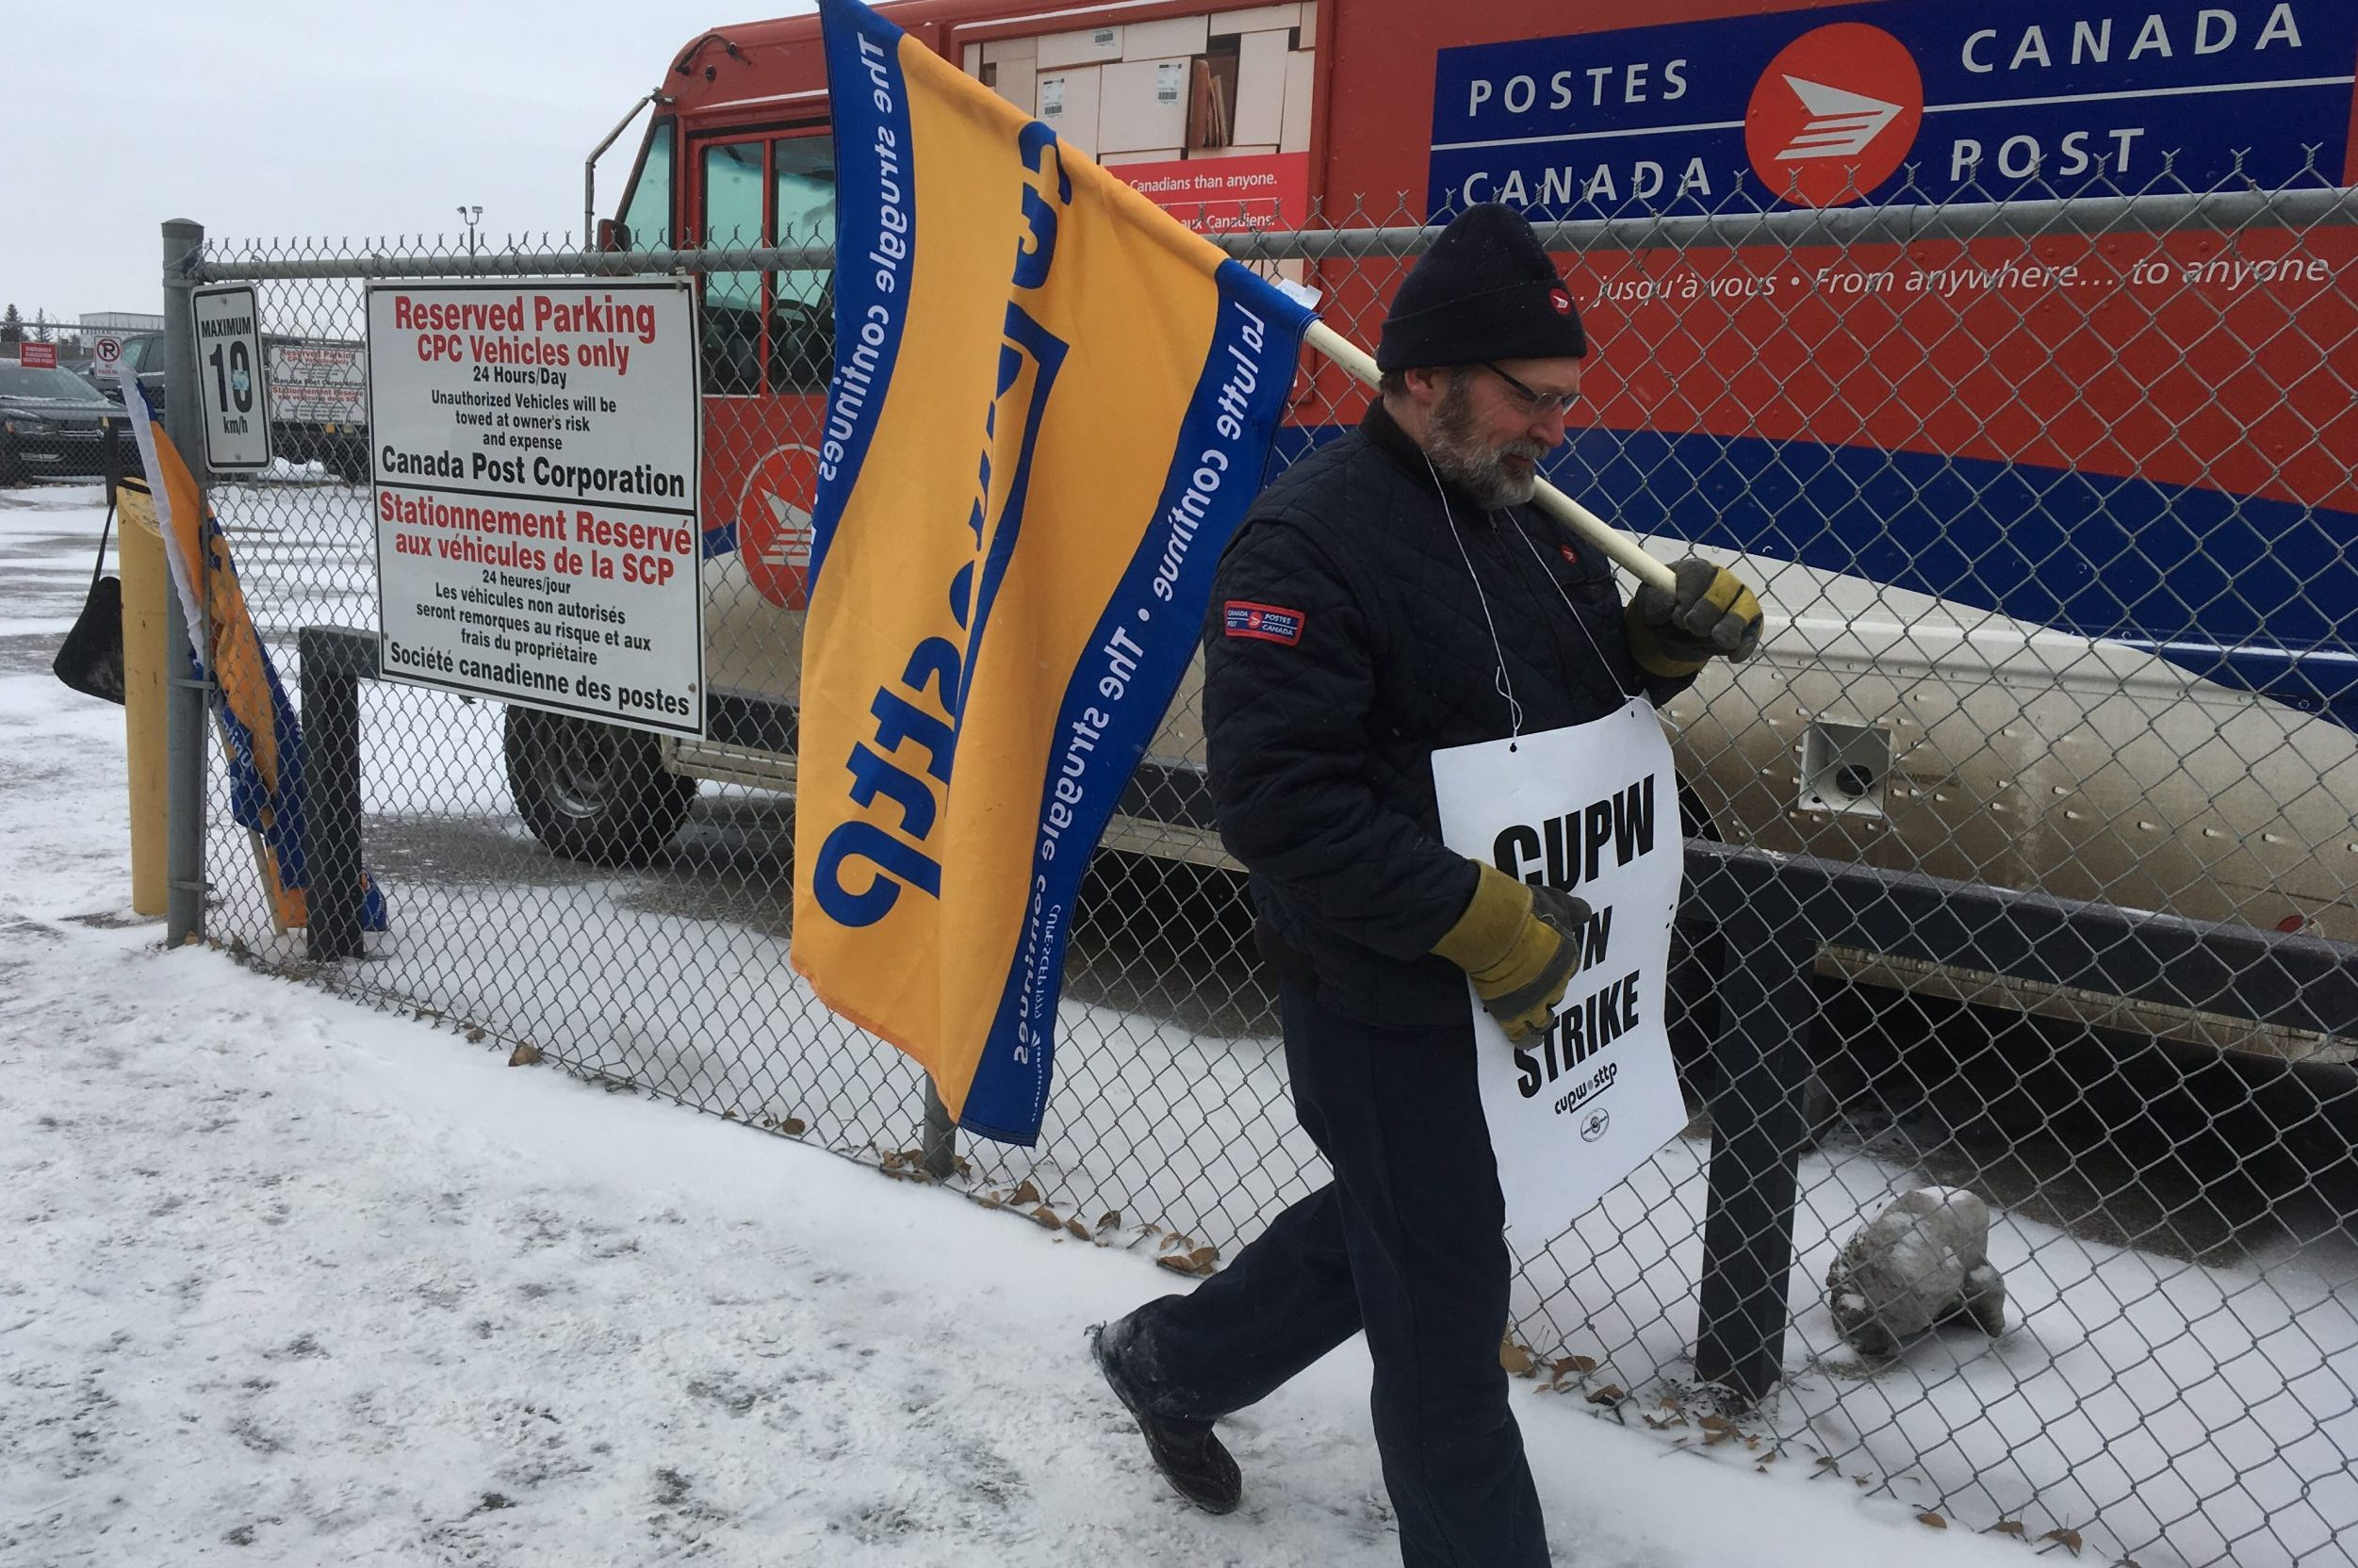 Senate passes back-to-work bill for postal workers